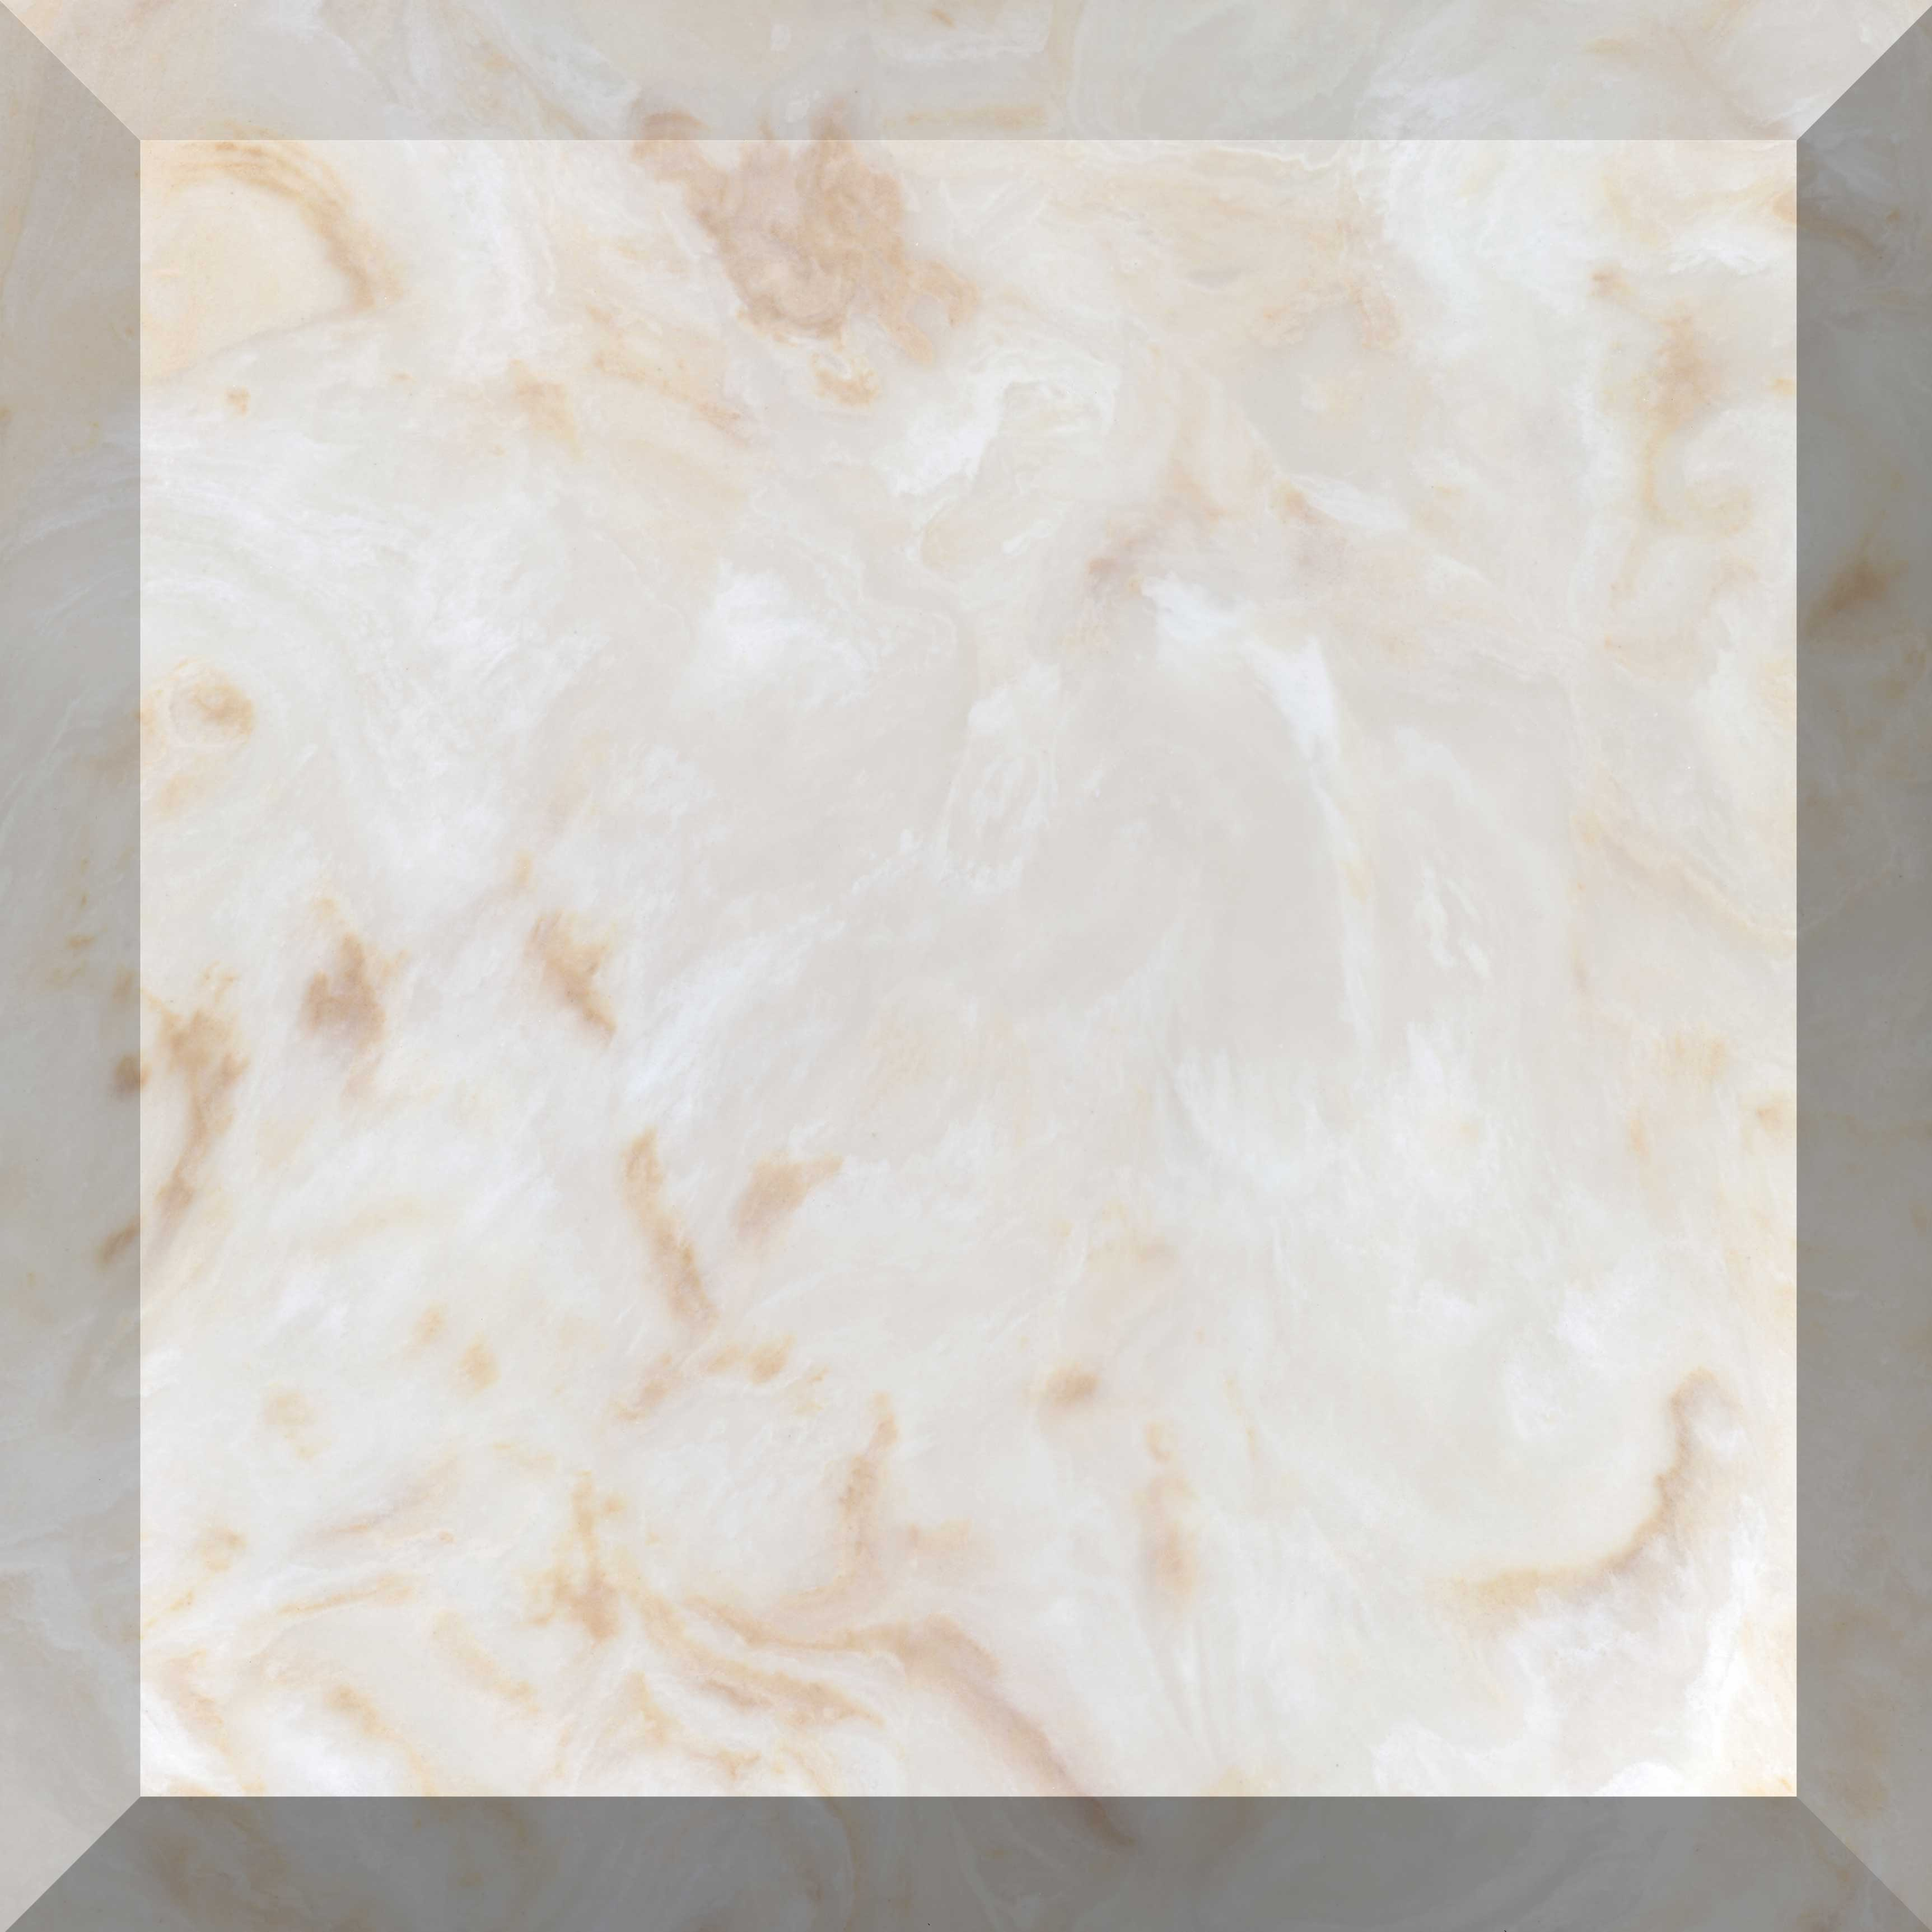 Cultured Marble | Florentine Marble Manufacturing Co